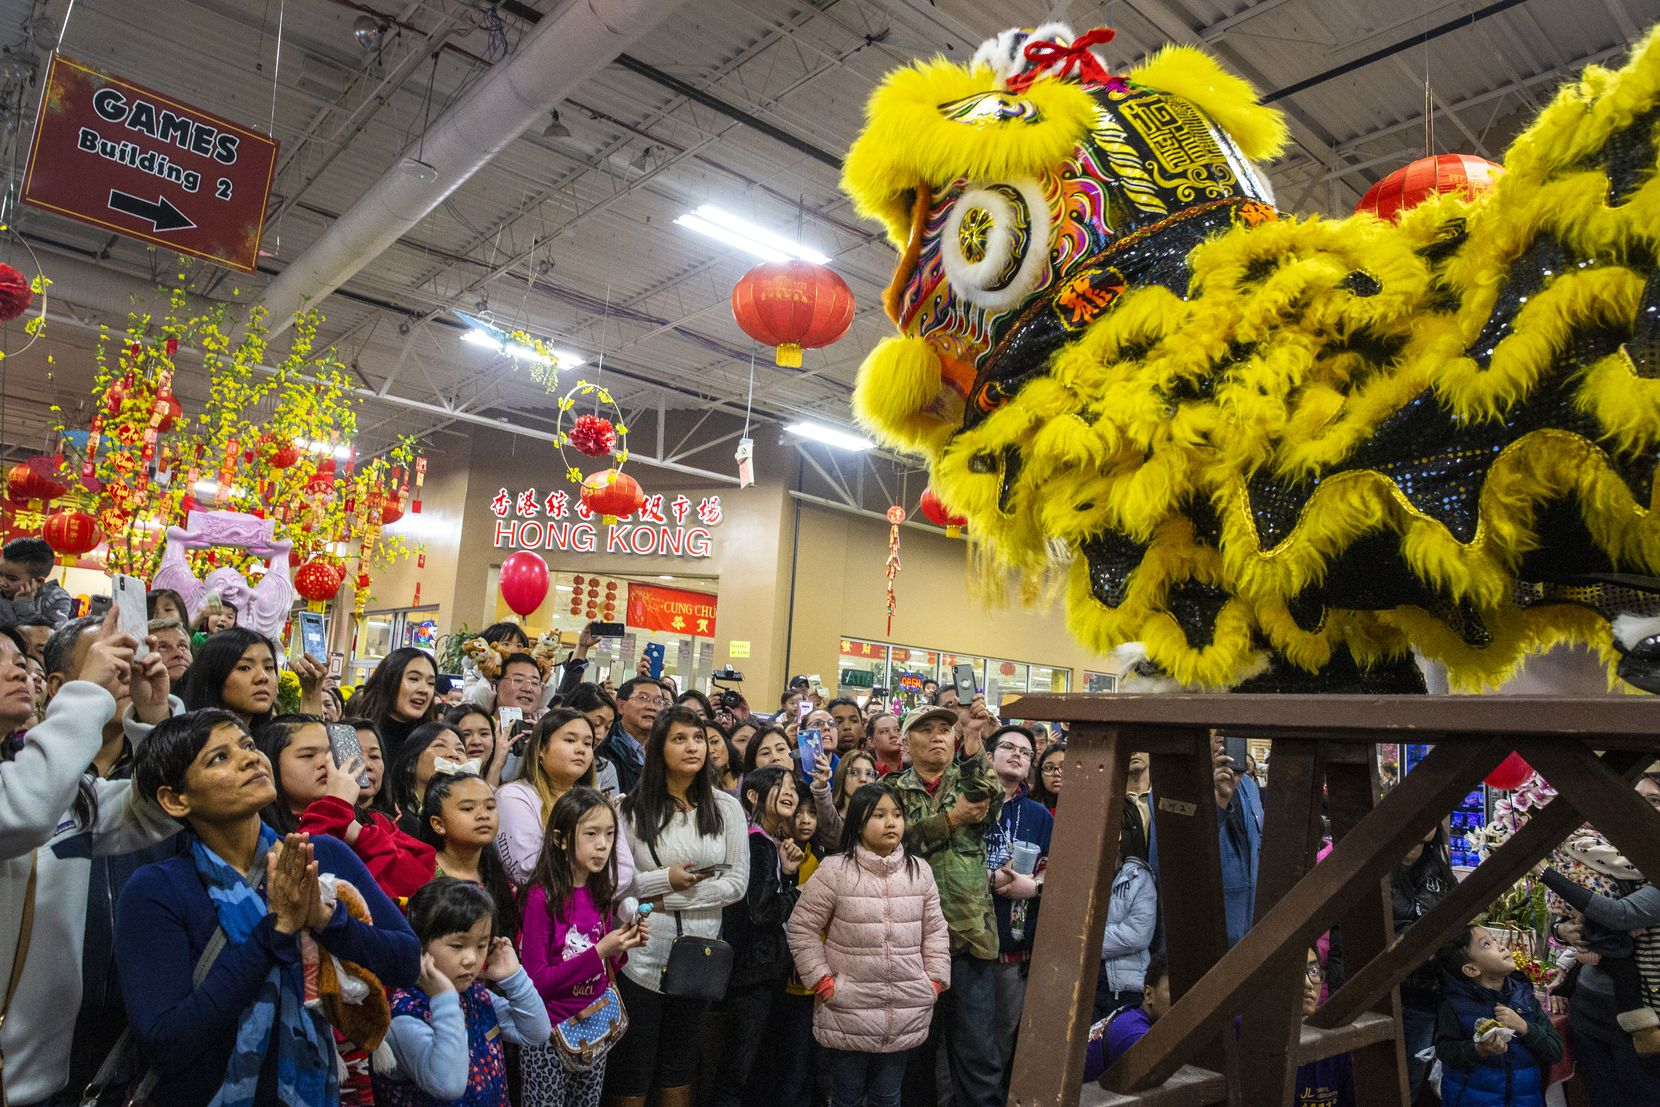 The Jiu Long Sports Association performed at last year's Lunar New Year Festival at Asia Times Square. This year's event continues the next two weekends with a variety of entertainment.